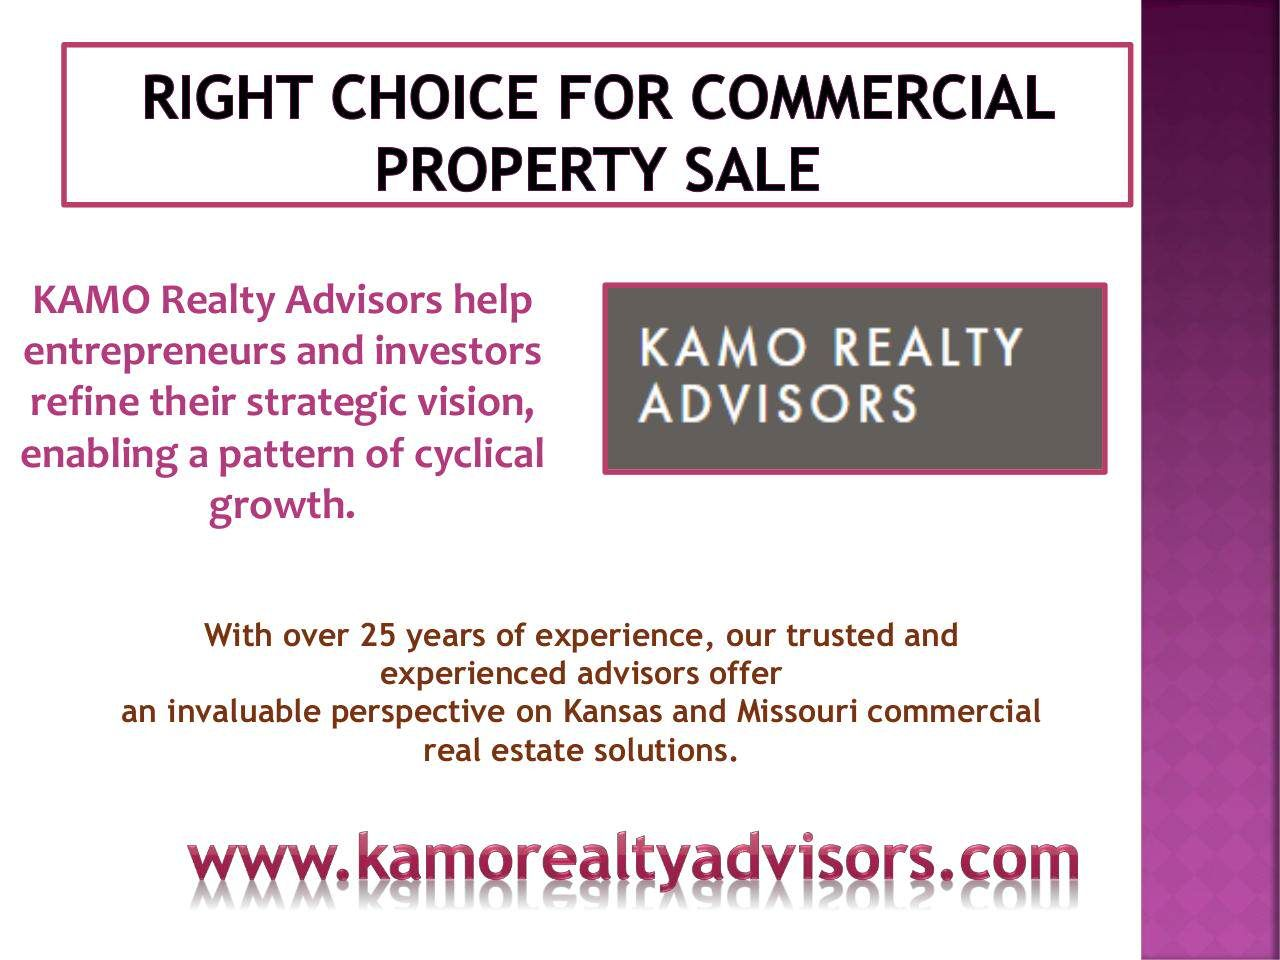 Kamorealtyadvisors Is The Right Choice For Commercial Property